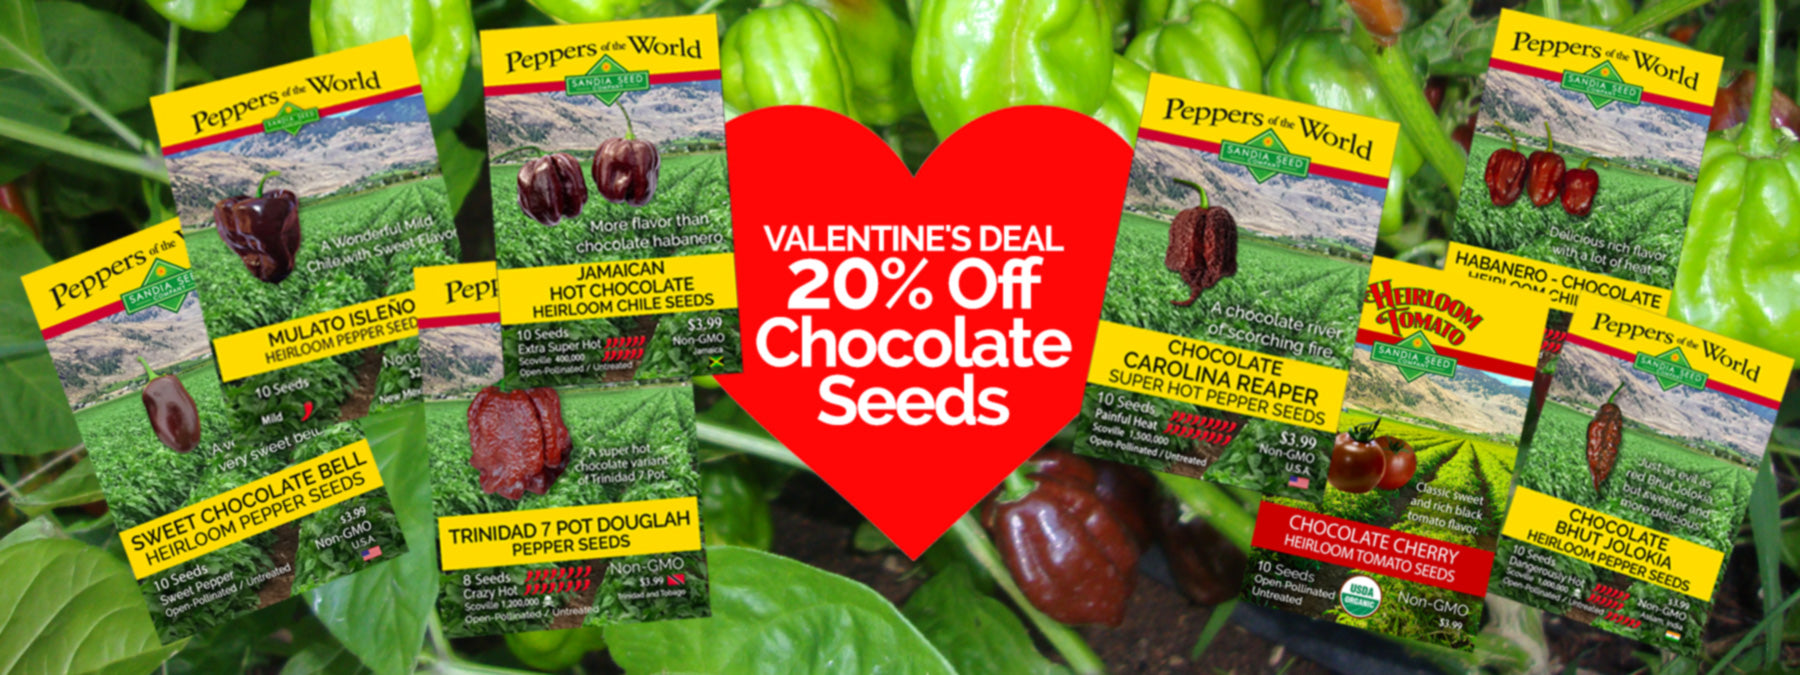 20% off Seeds for Chocolate Varieties for Valentine's Day